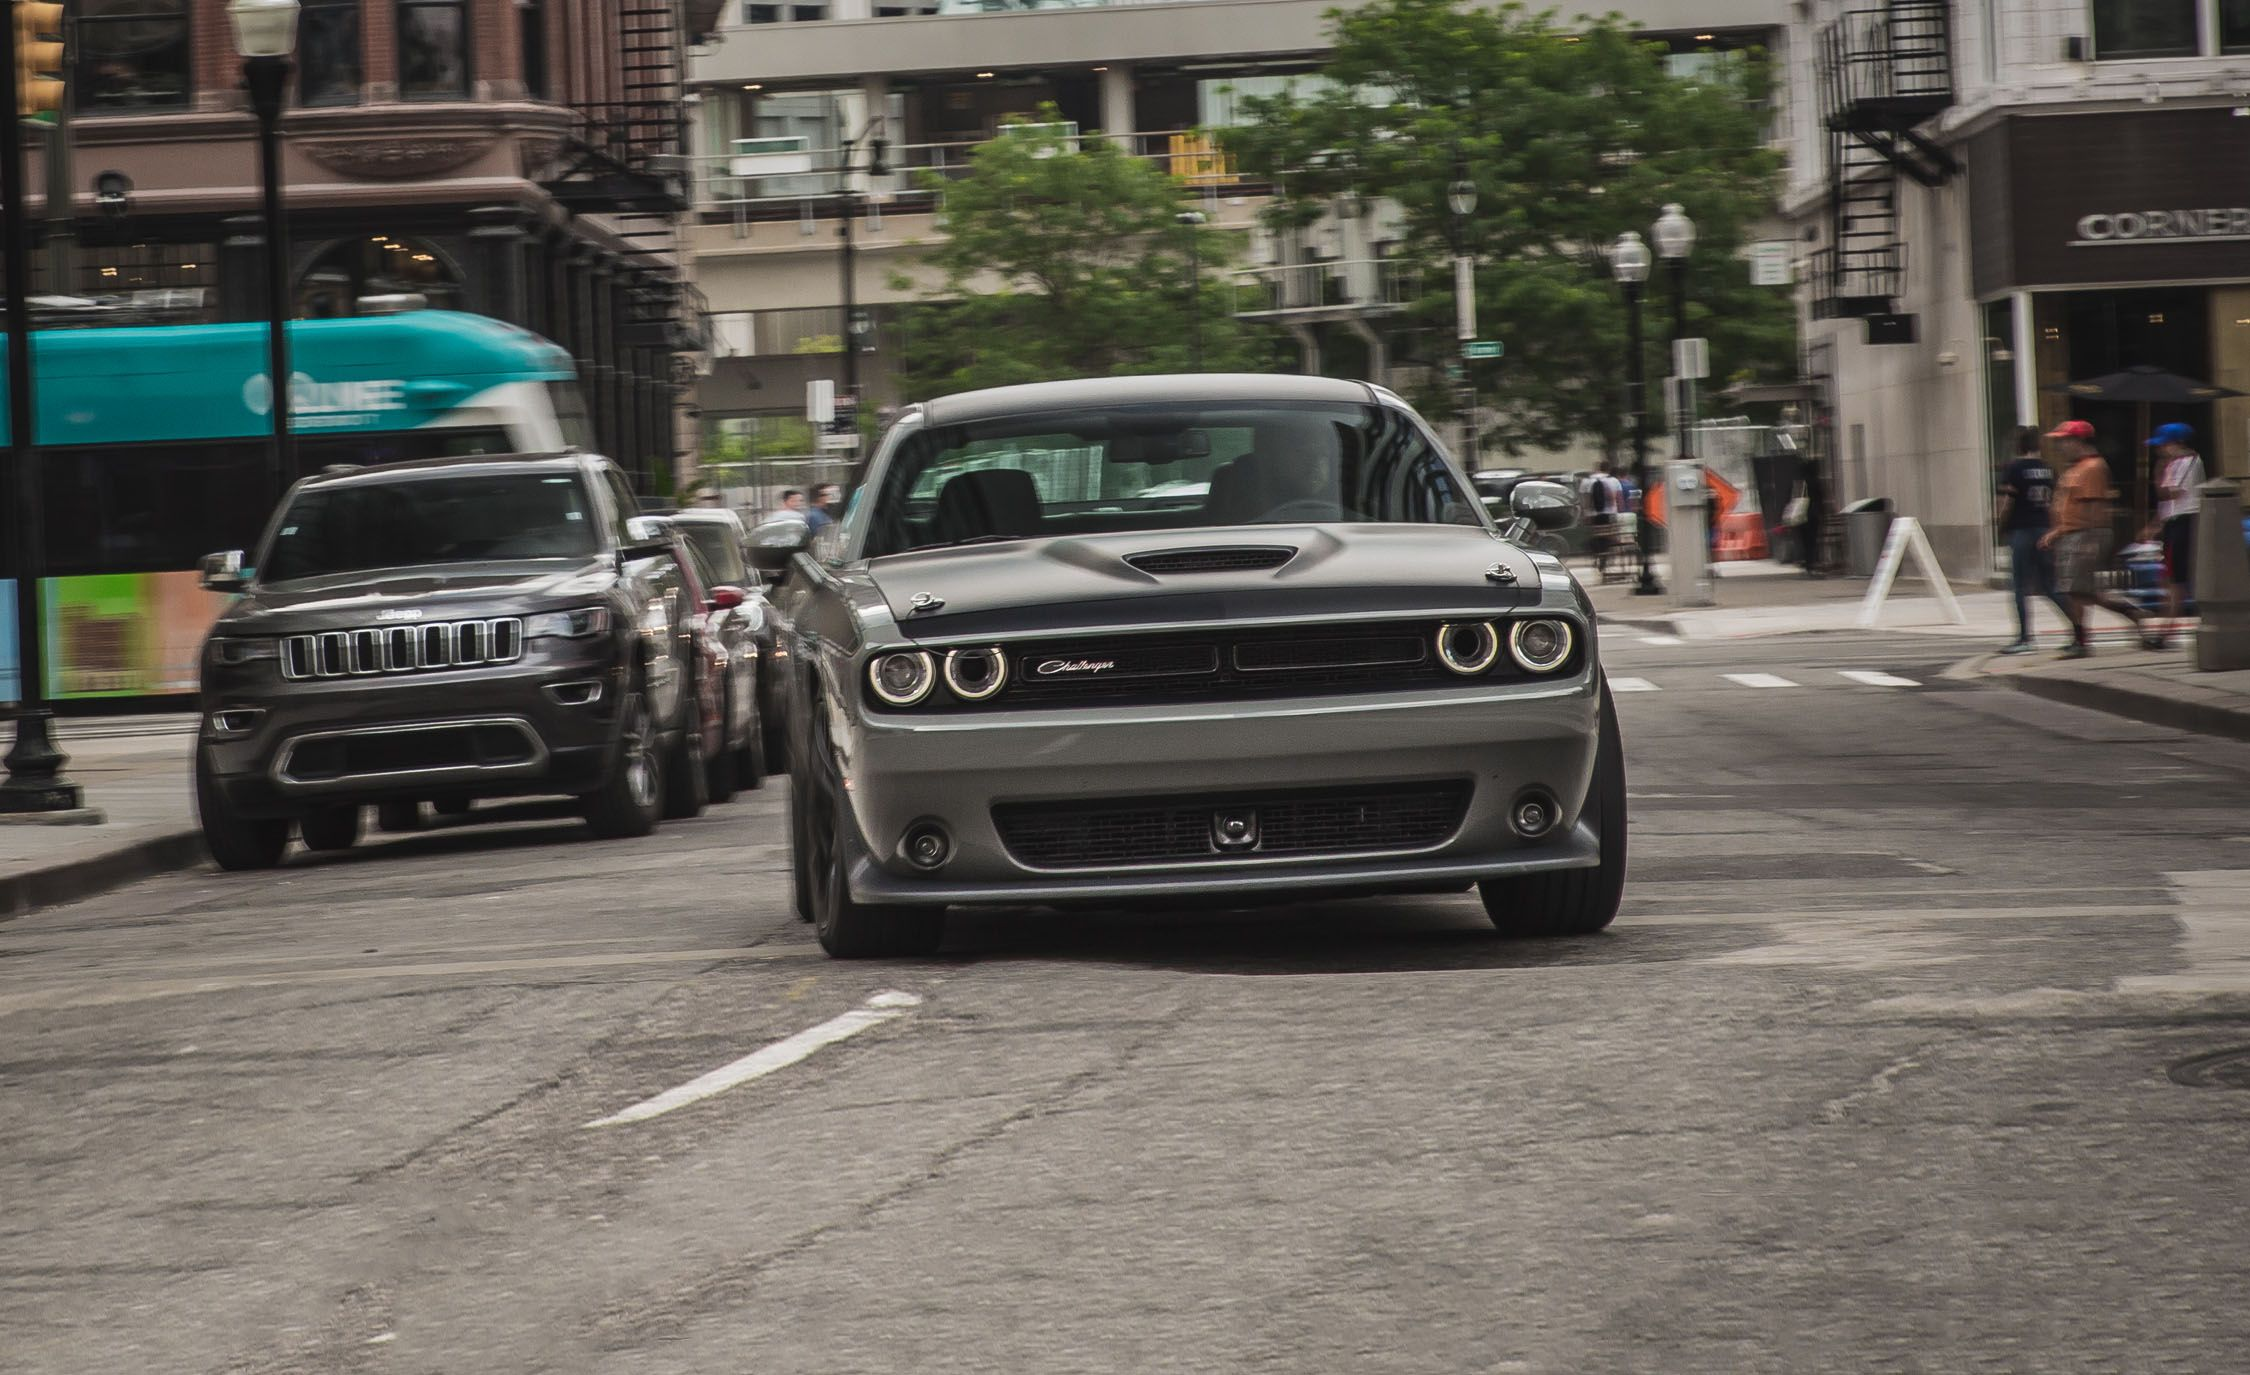 Dodge Challenger Reviews Dodge Challenger Price Photos